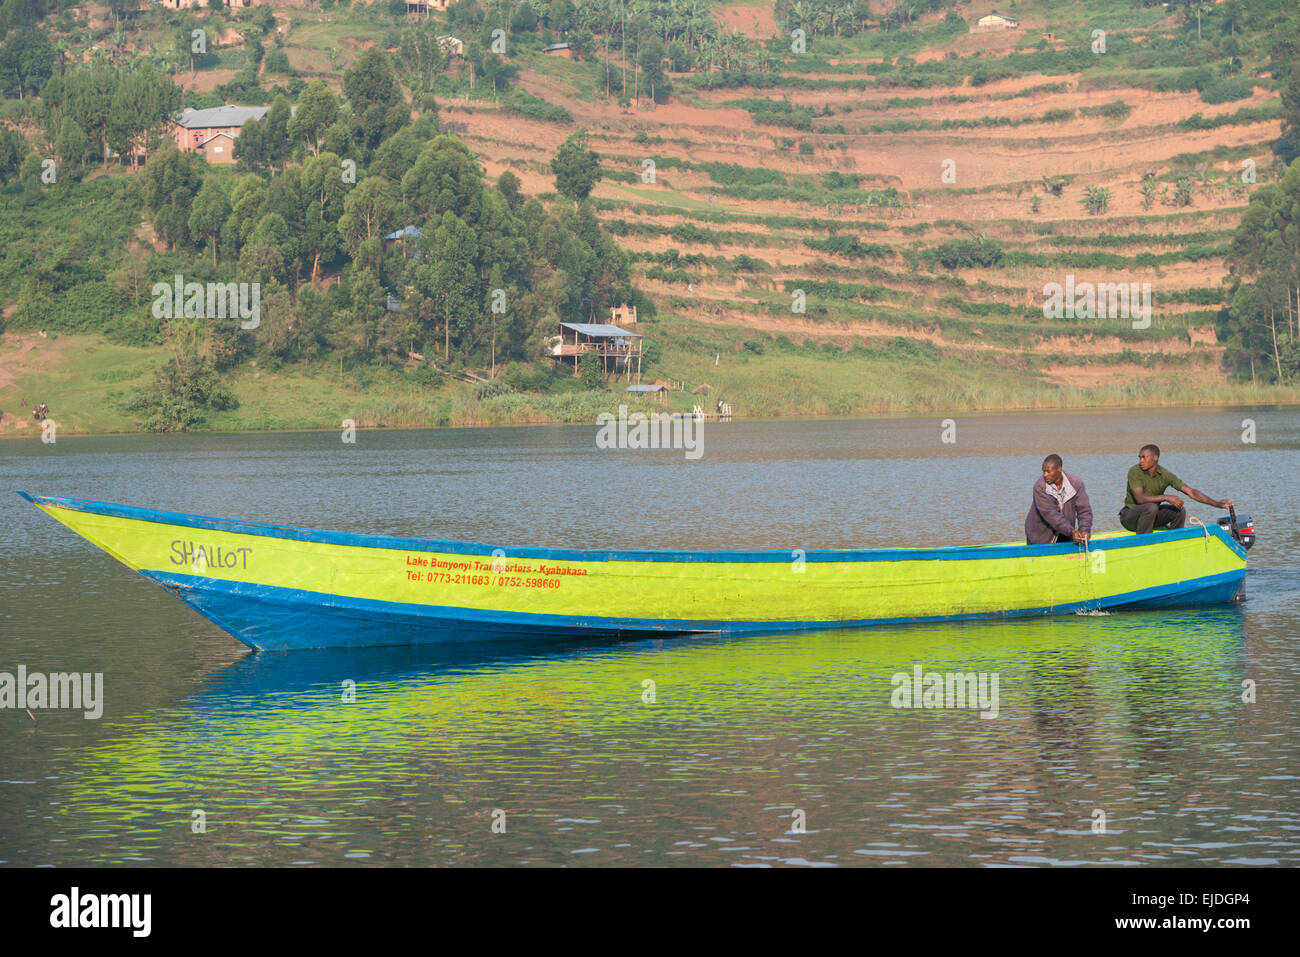 Boat Landing à Mainland. Lac bunyonyi. L'Ouganda. Photo Stock